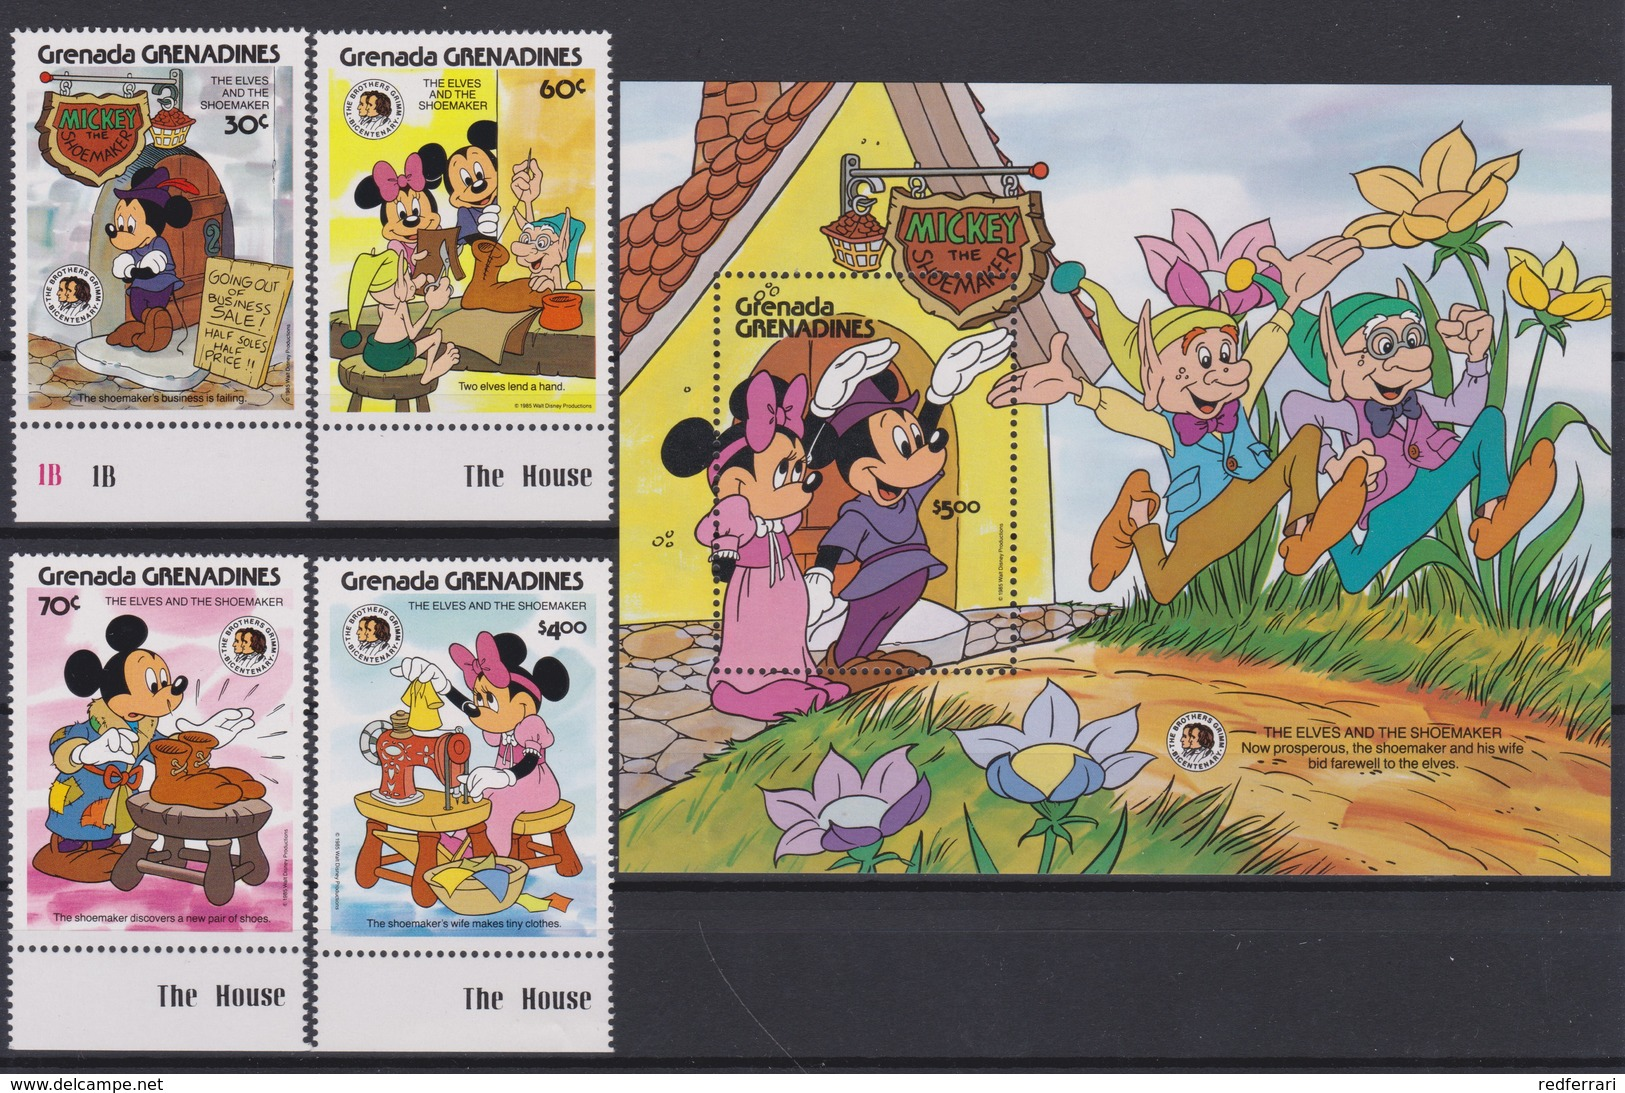 2276  WALT DISNEY - GRENADA  GRENADINES  ( The Elves And The Shoemaker ) Bicentenary Of The Brothers Grimm  . - Disney